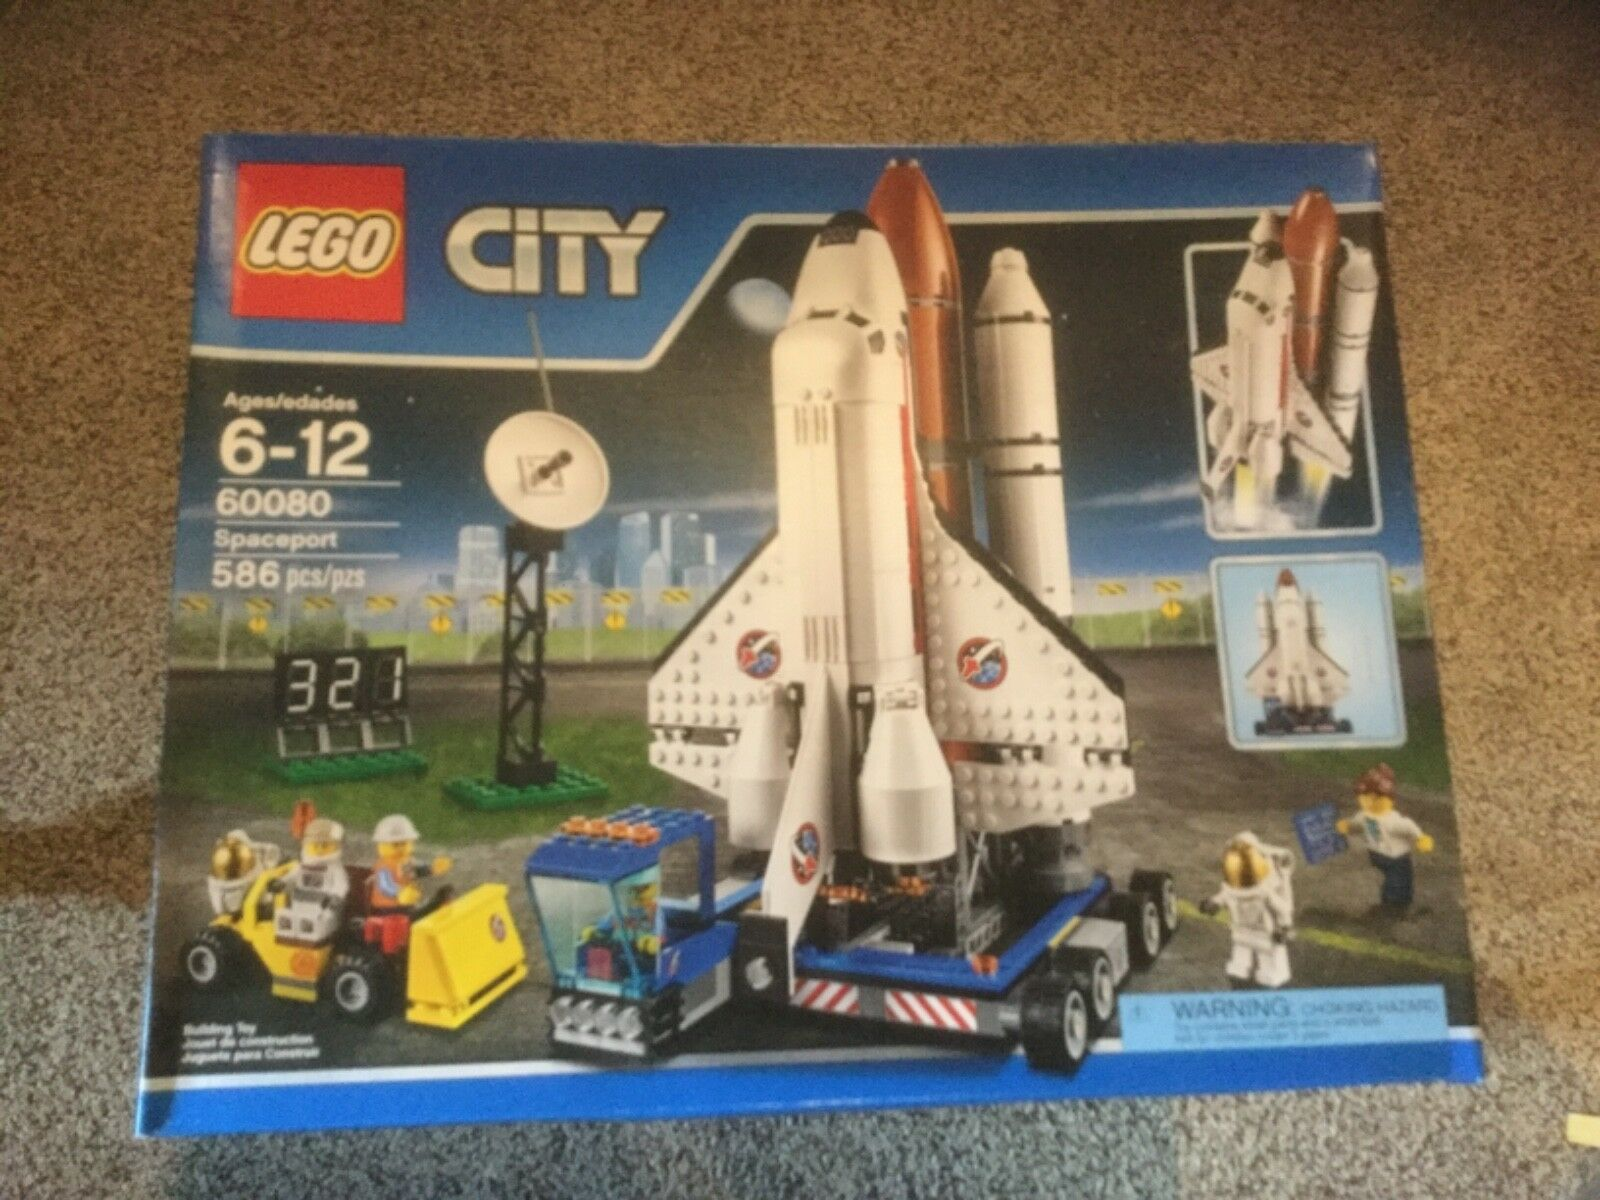 NIB LEGO City Spaceport (60080)